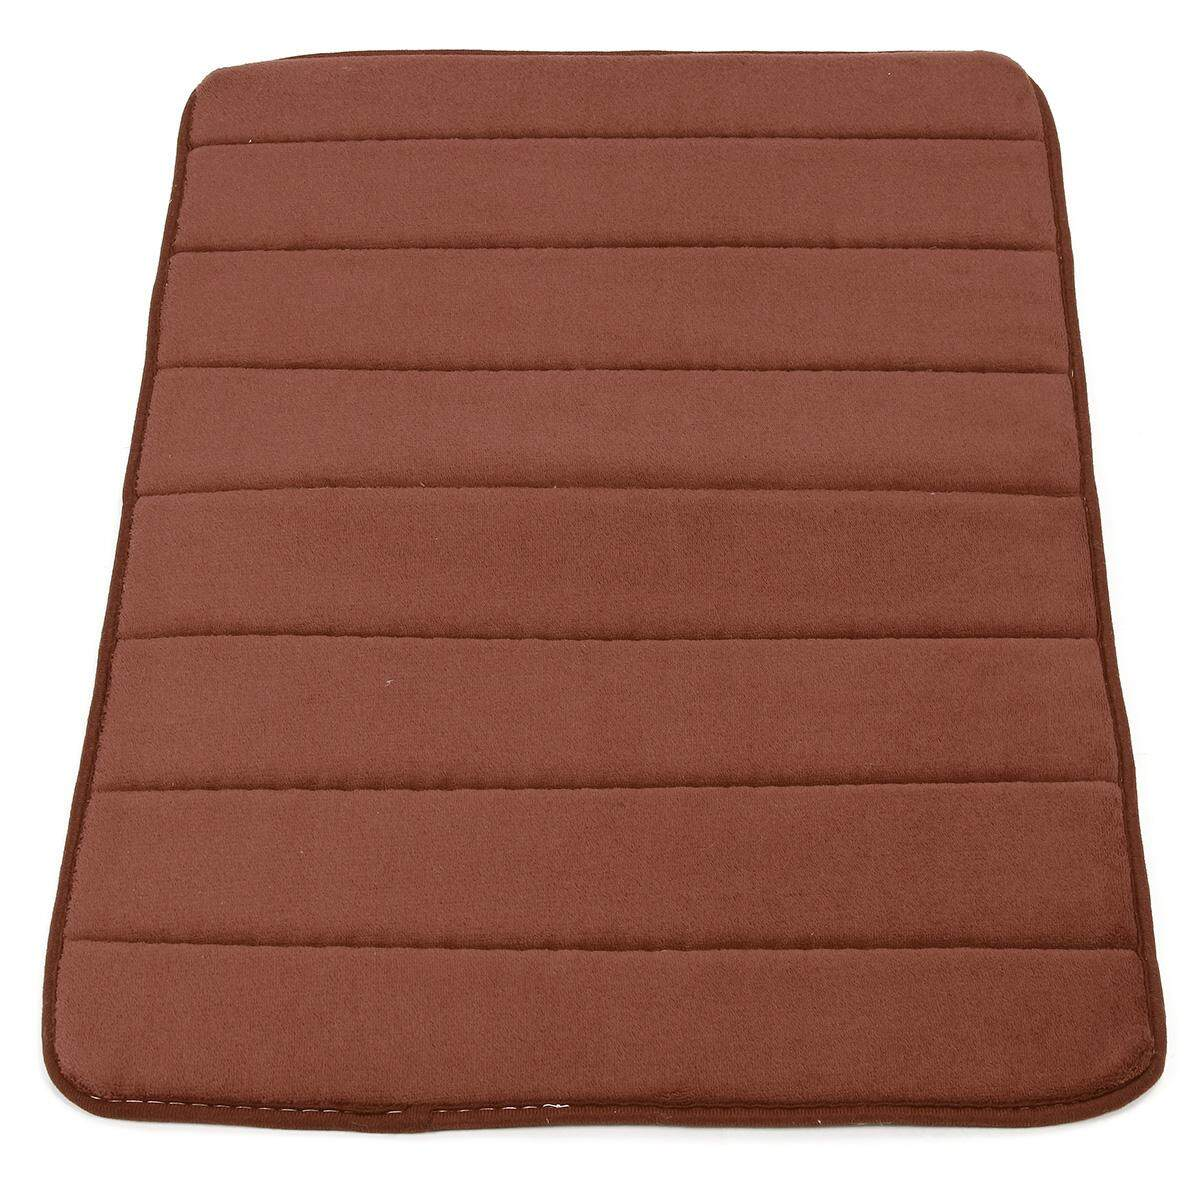 Anti Slip Mat for sale - Non-Slip Bath Mat online brands, prices ...